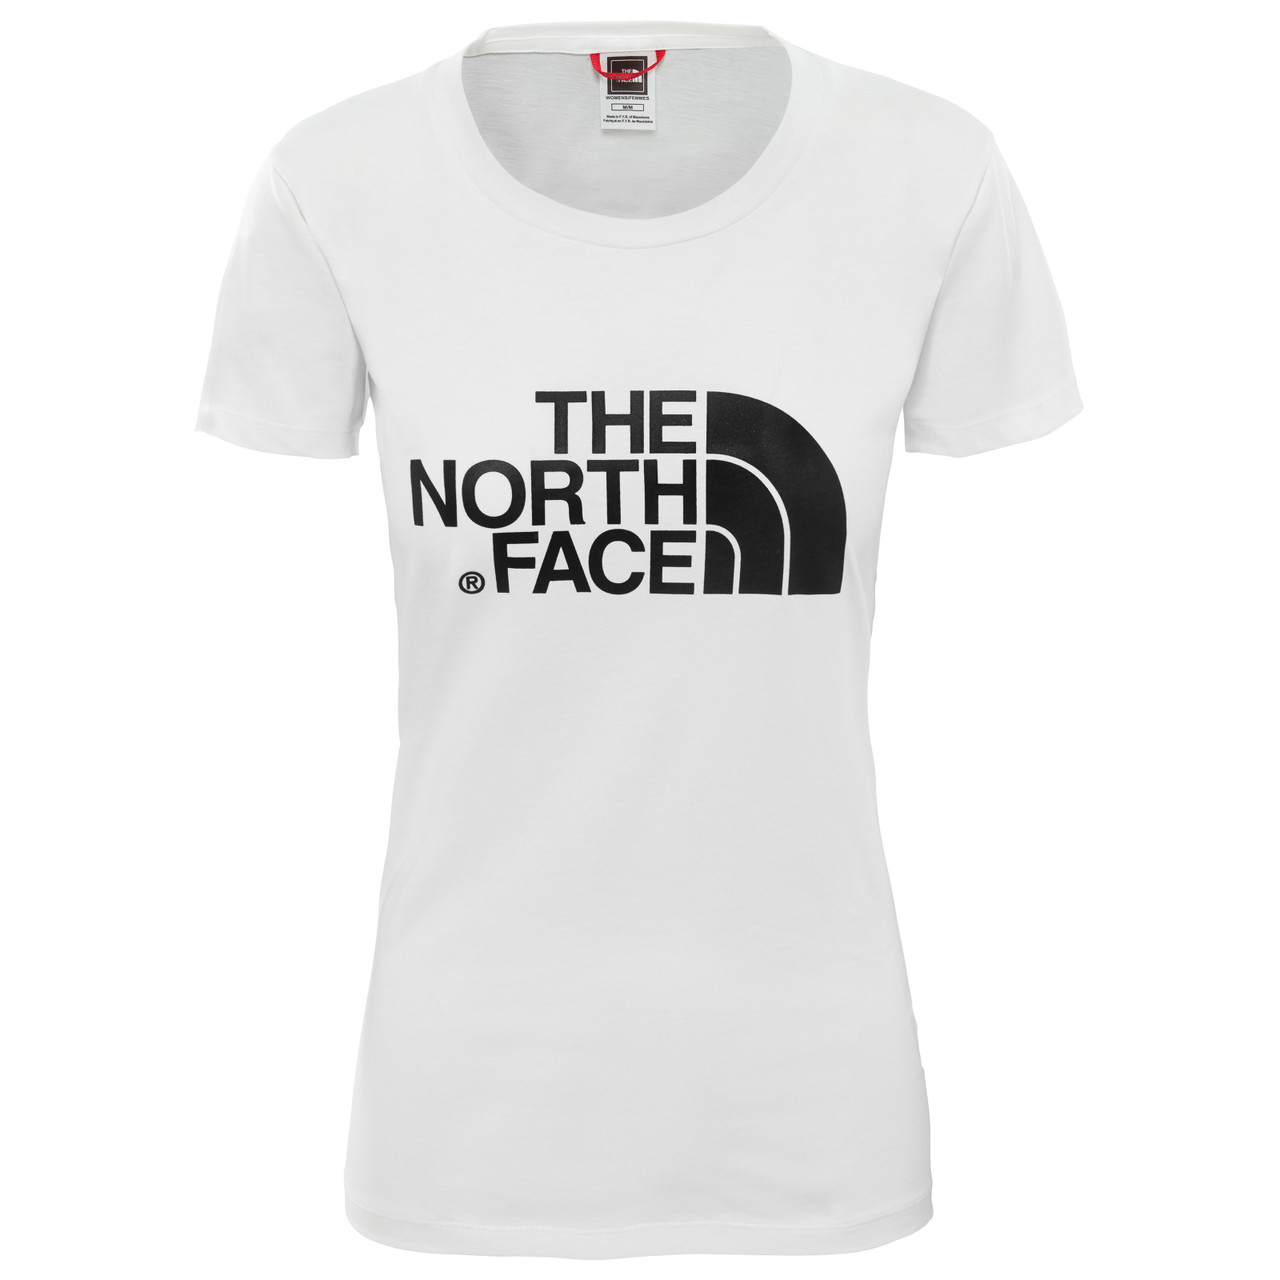 The North Face Easy Tee Women's S/S